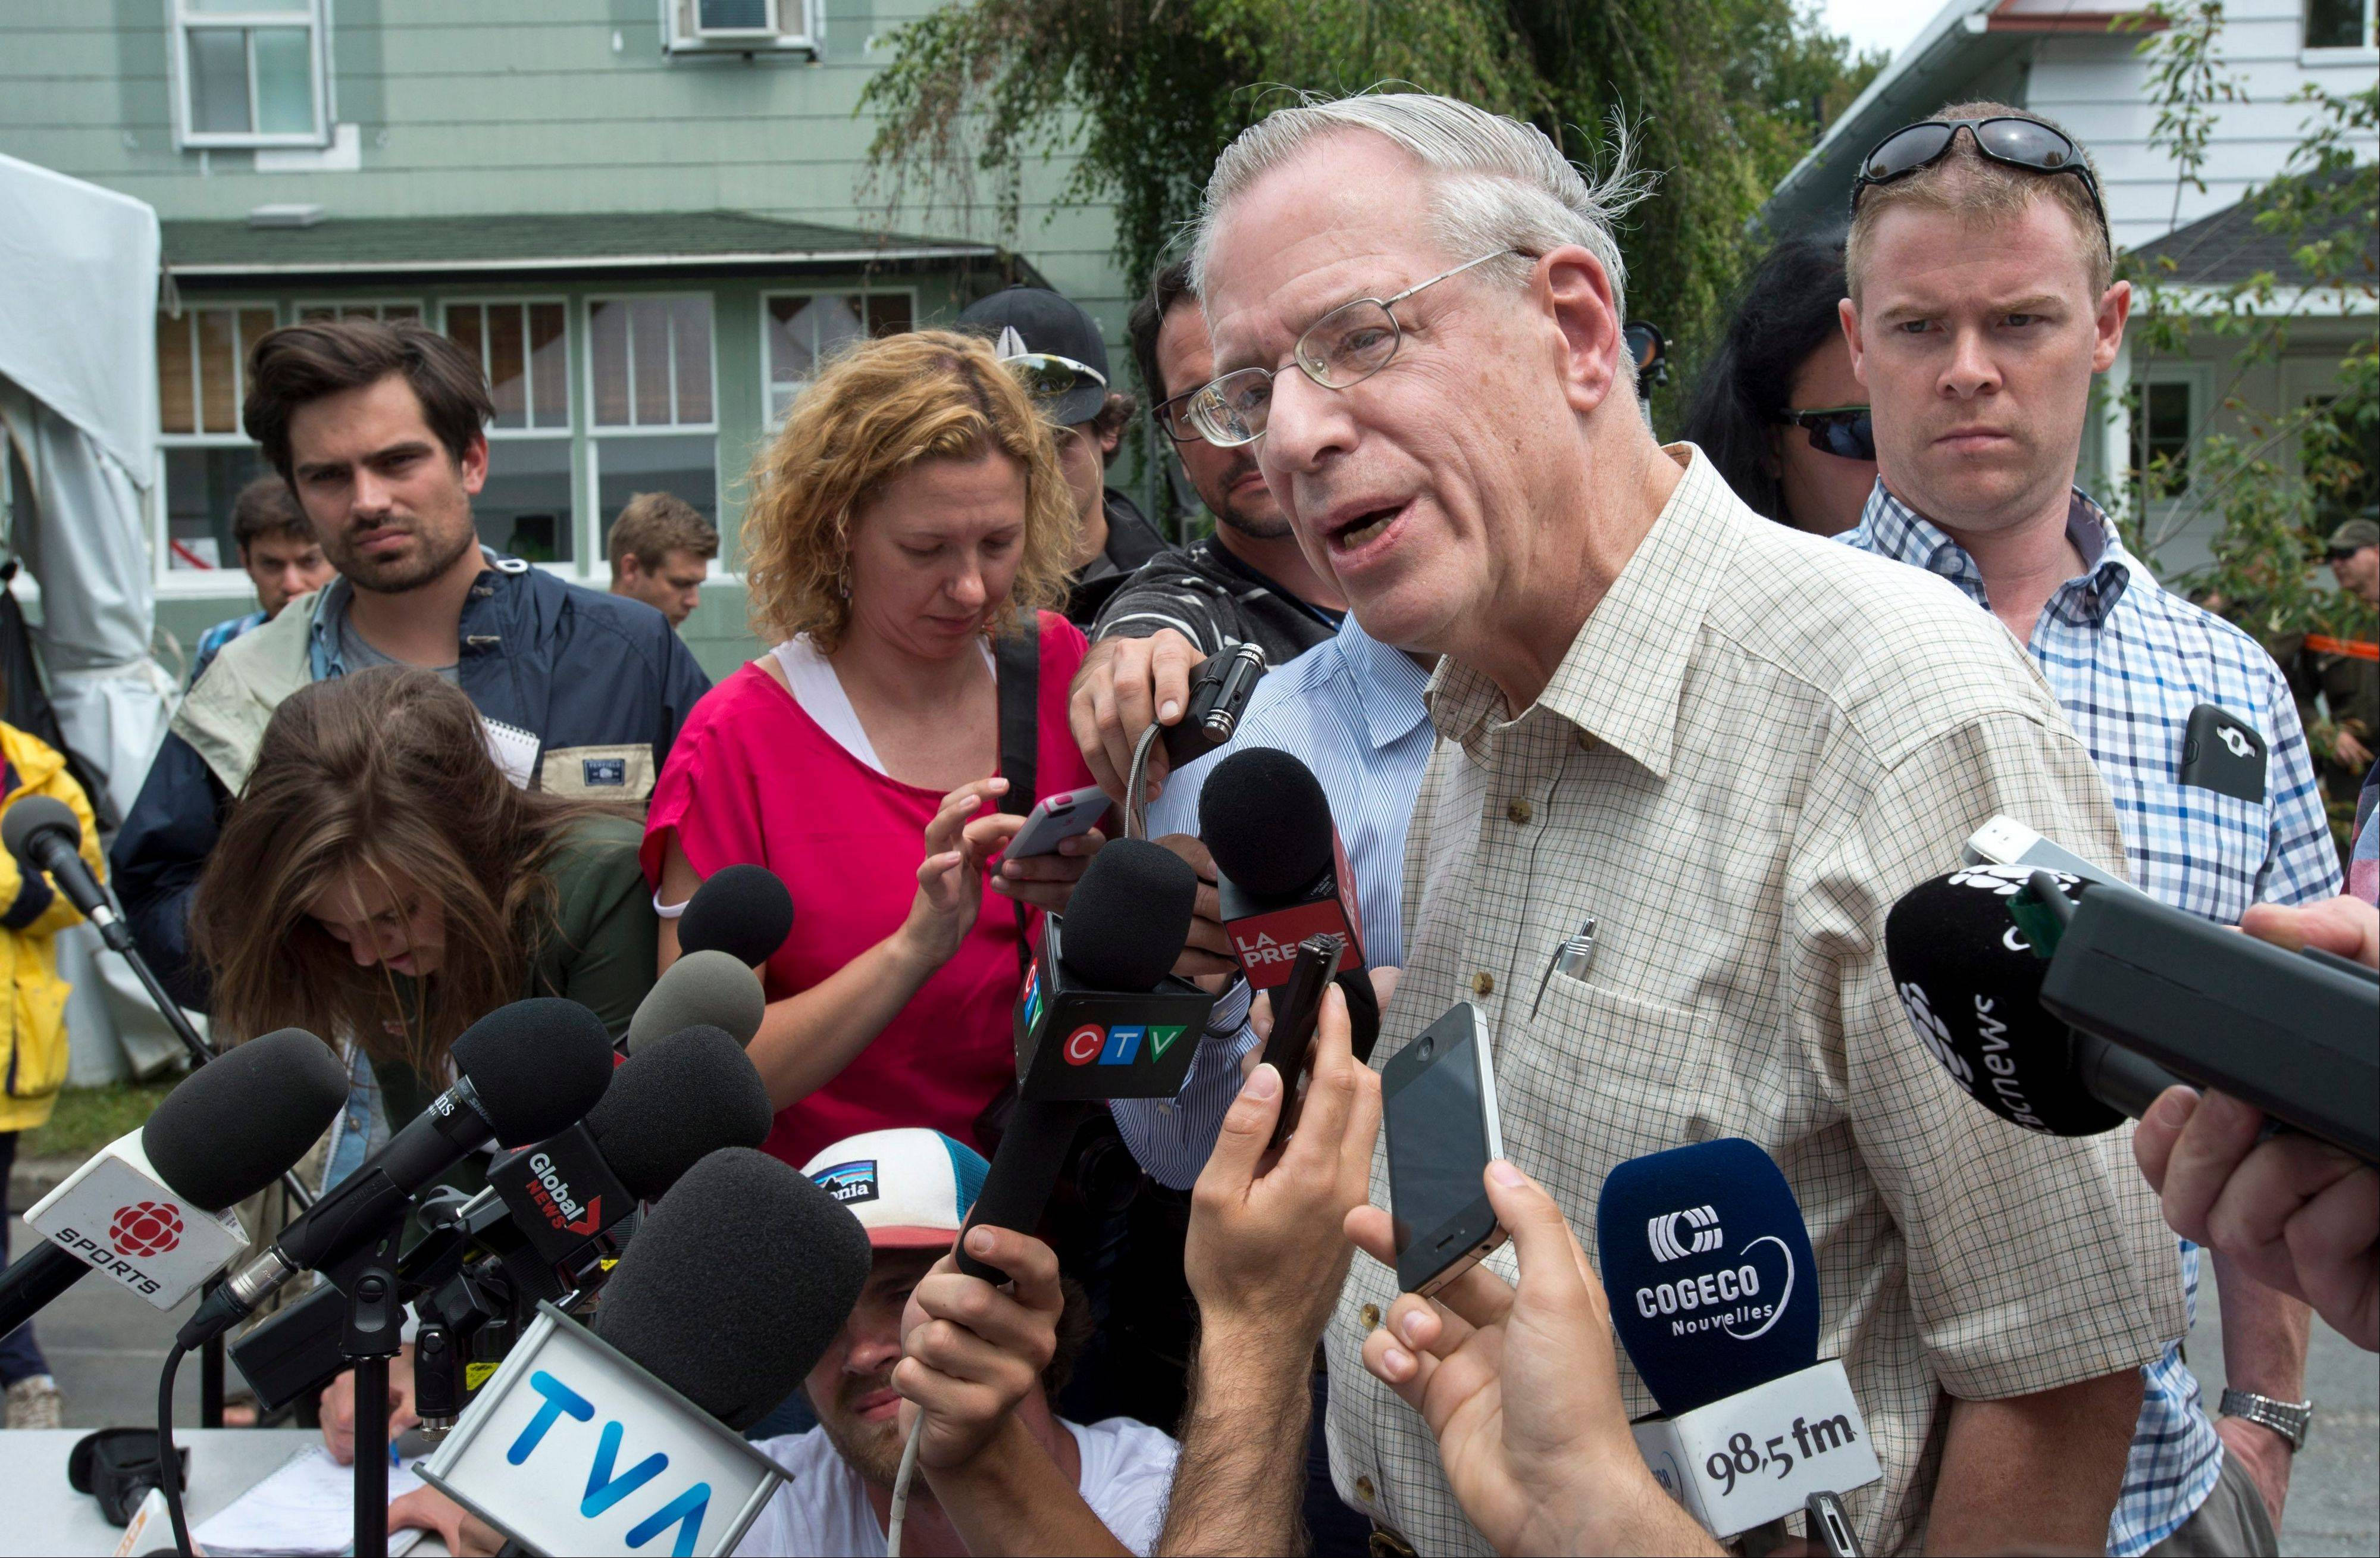 Rail World Inc. president Edward Burkhardt speaks to the media as he tours Lac-Megantic, Quebec, Wednesday. A Rail World train crashed into the town killing at least 15 people. Burkhardt blamed the accident on an employee who he said had failed to properly set the brakes.